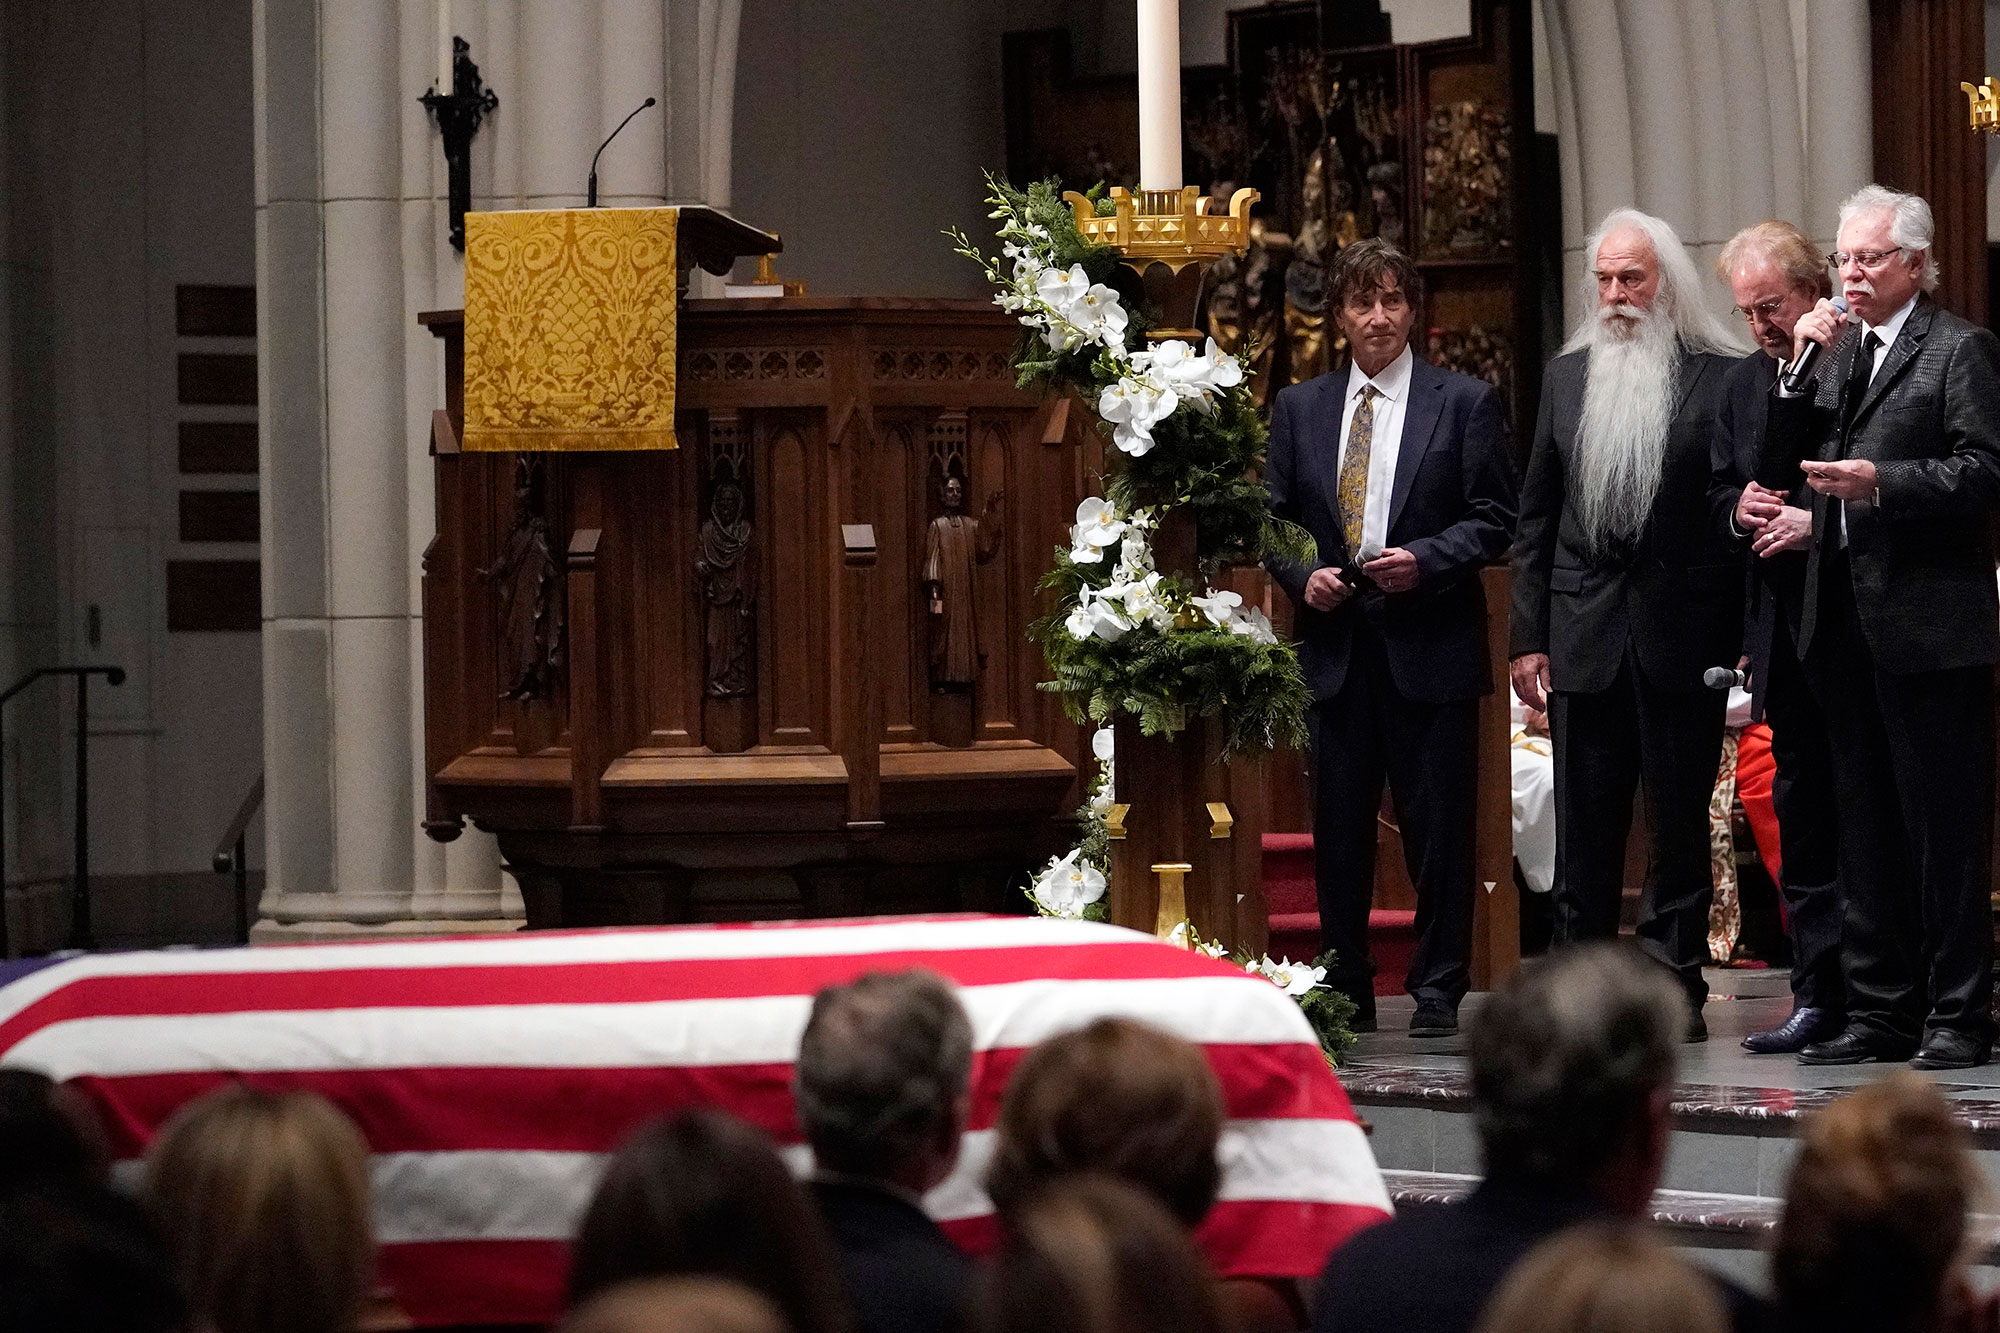 "<div class=""meta image-caption""><div class=""origin-logo origin-image none""><span>none</span></div><span class=""caption-text"">The Oak Ridge Boys sing ""Amazing Grace"" during a funeral service for former President George H.W. Bush at St. Martins Episcopal Church on December 6, 2018. (David J. Phillip-Pool/Getty Images)</span></div>"